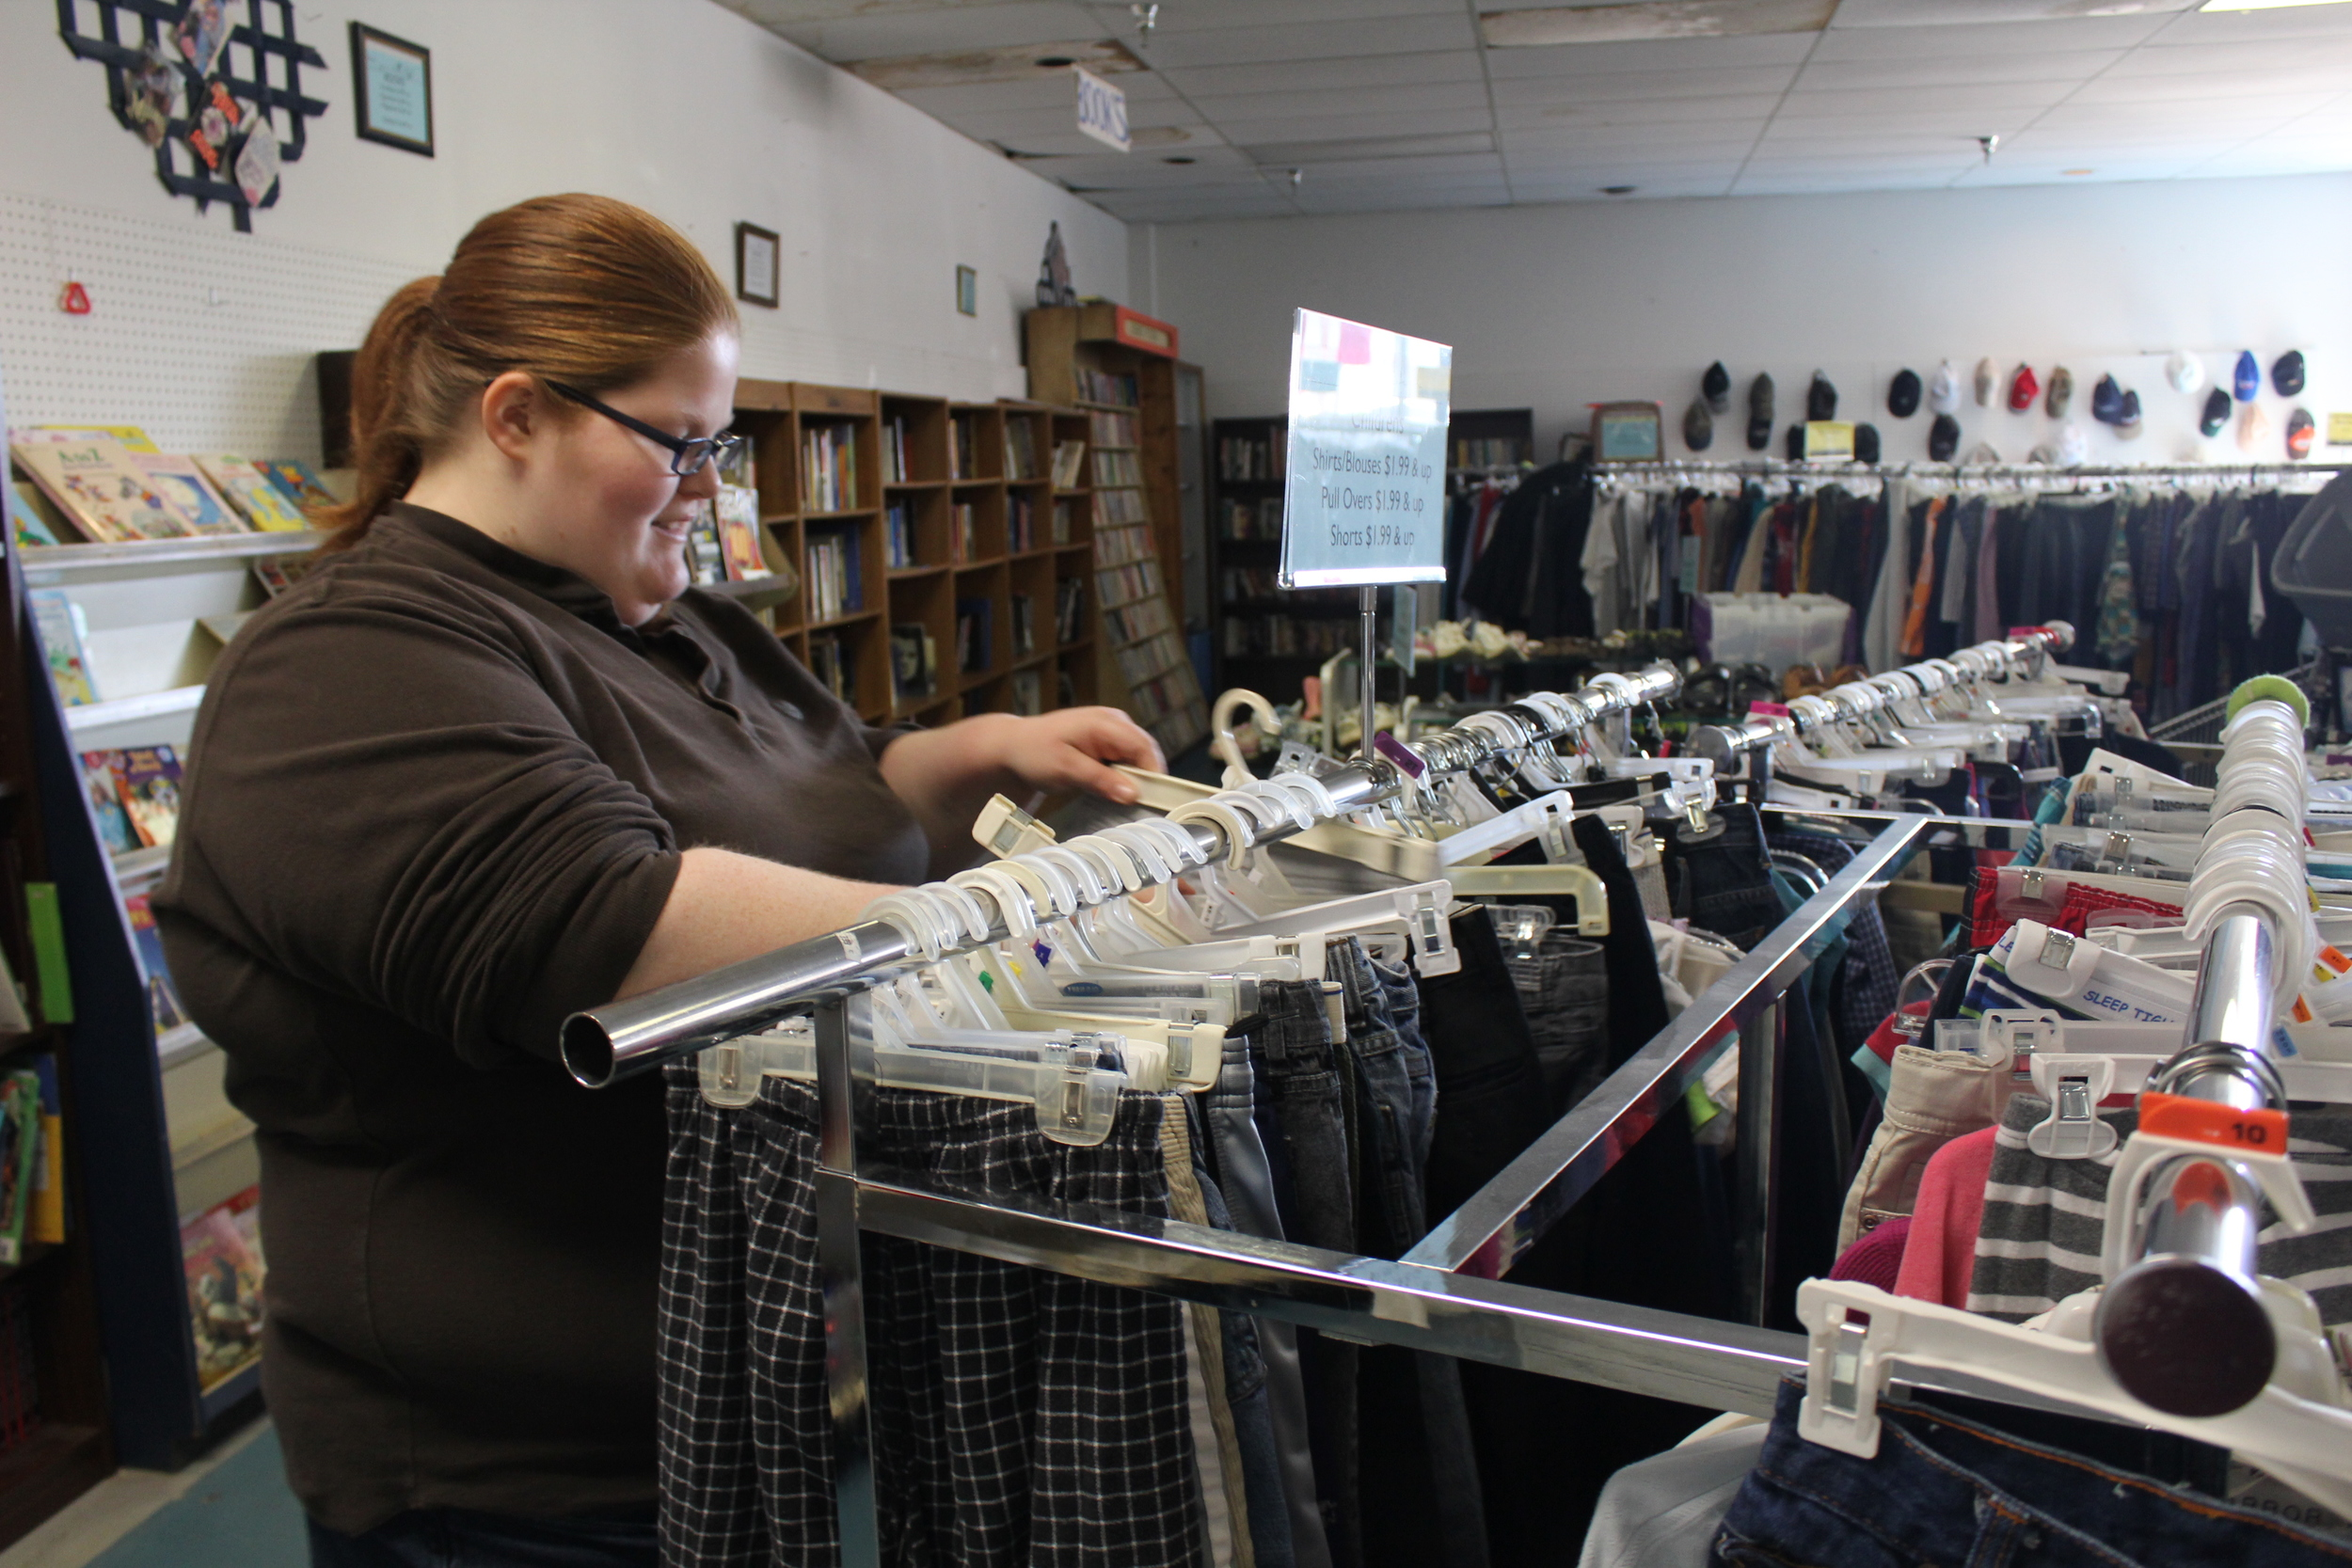 Maura Cadmus processes donations at the Oak Ridge retail store as part of her Work Adjustment Training. When her high school CDC partner visits, they work together on this task.